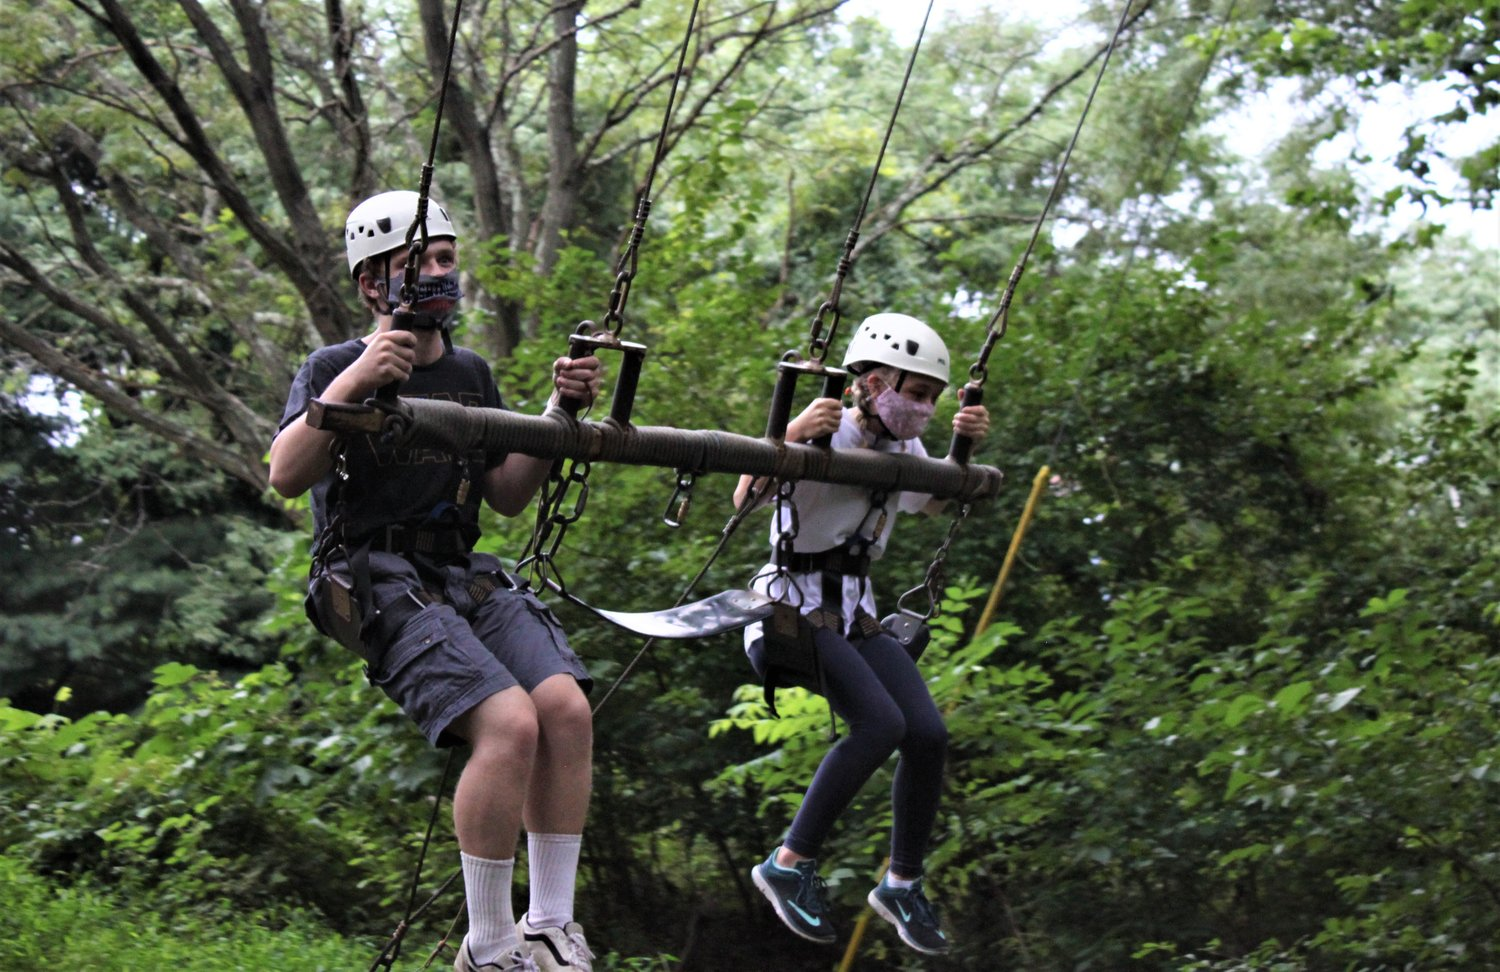 From left, Jeremiah Faust and Lillian Cross rode in a swing that flew high into the tree canopy during Camp Phoenix Teen Grief Camp held at Terrapin Adventures in Savage, Maryland.